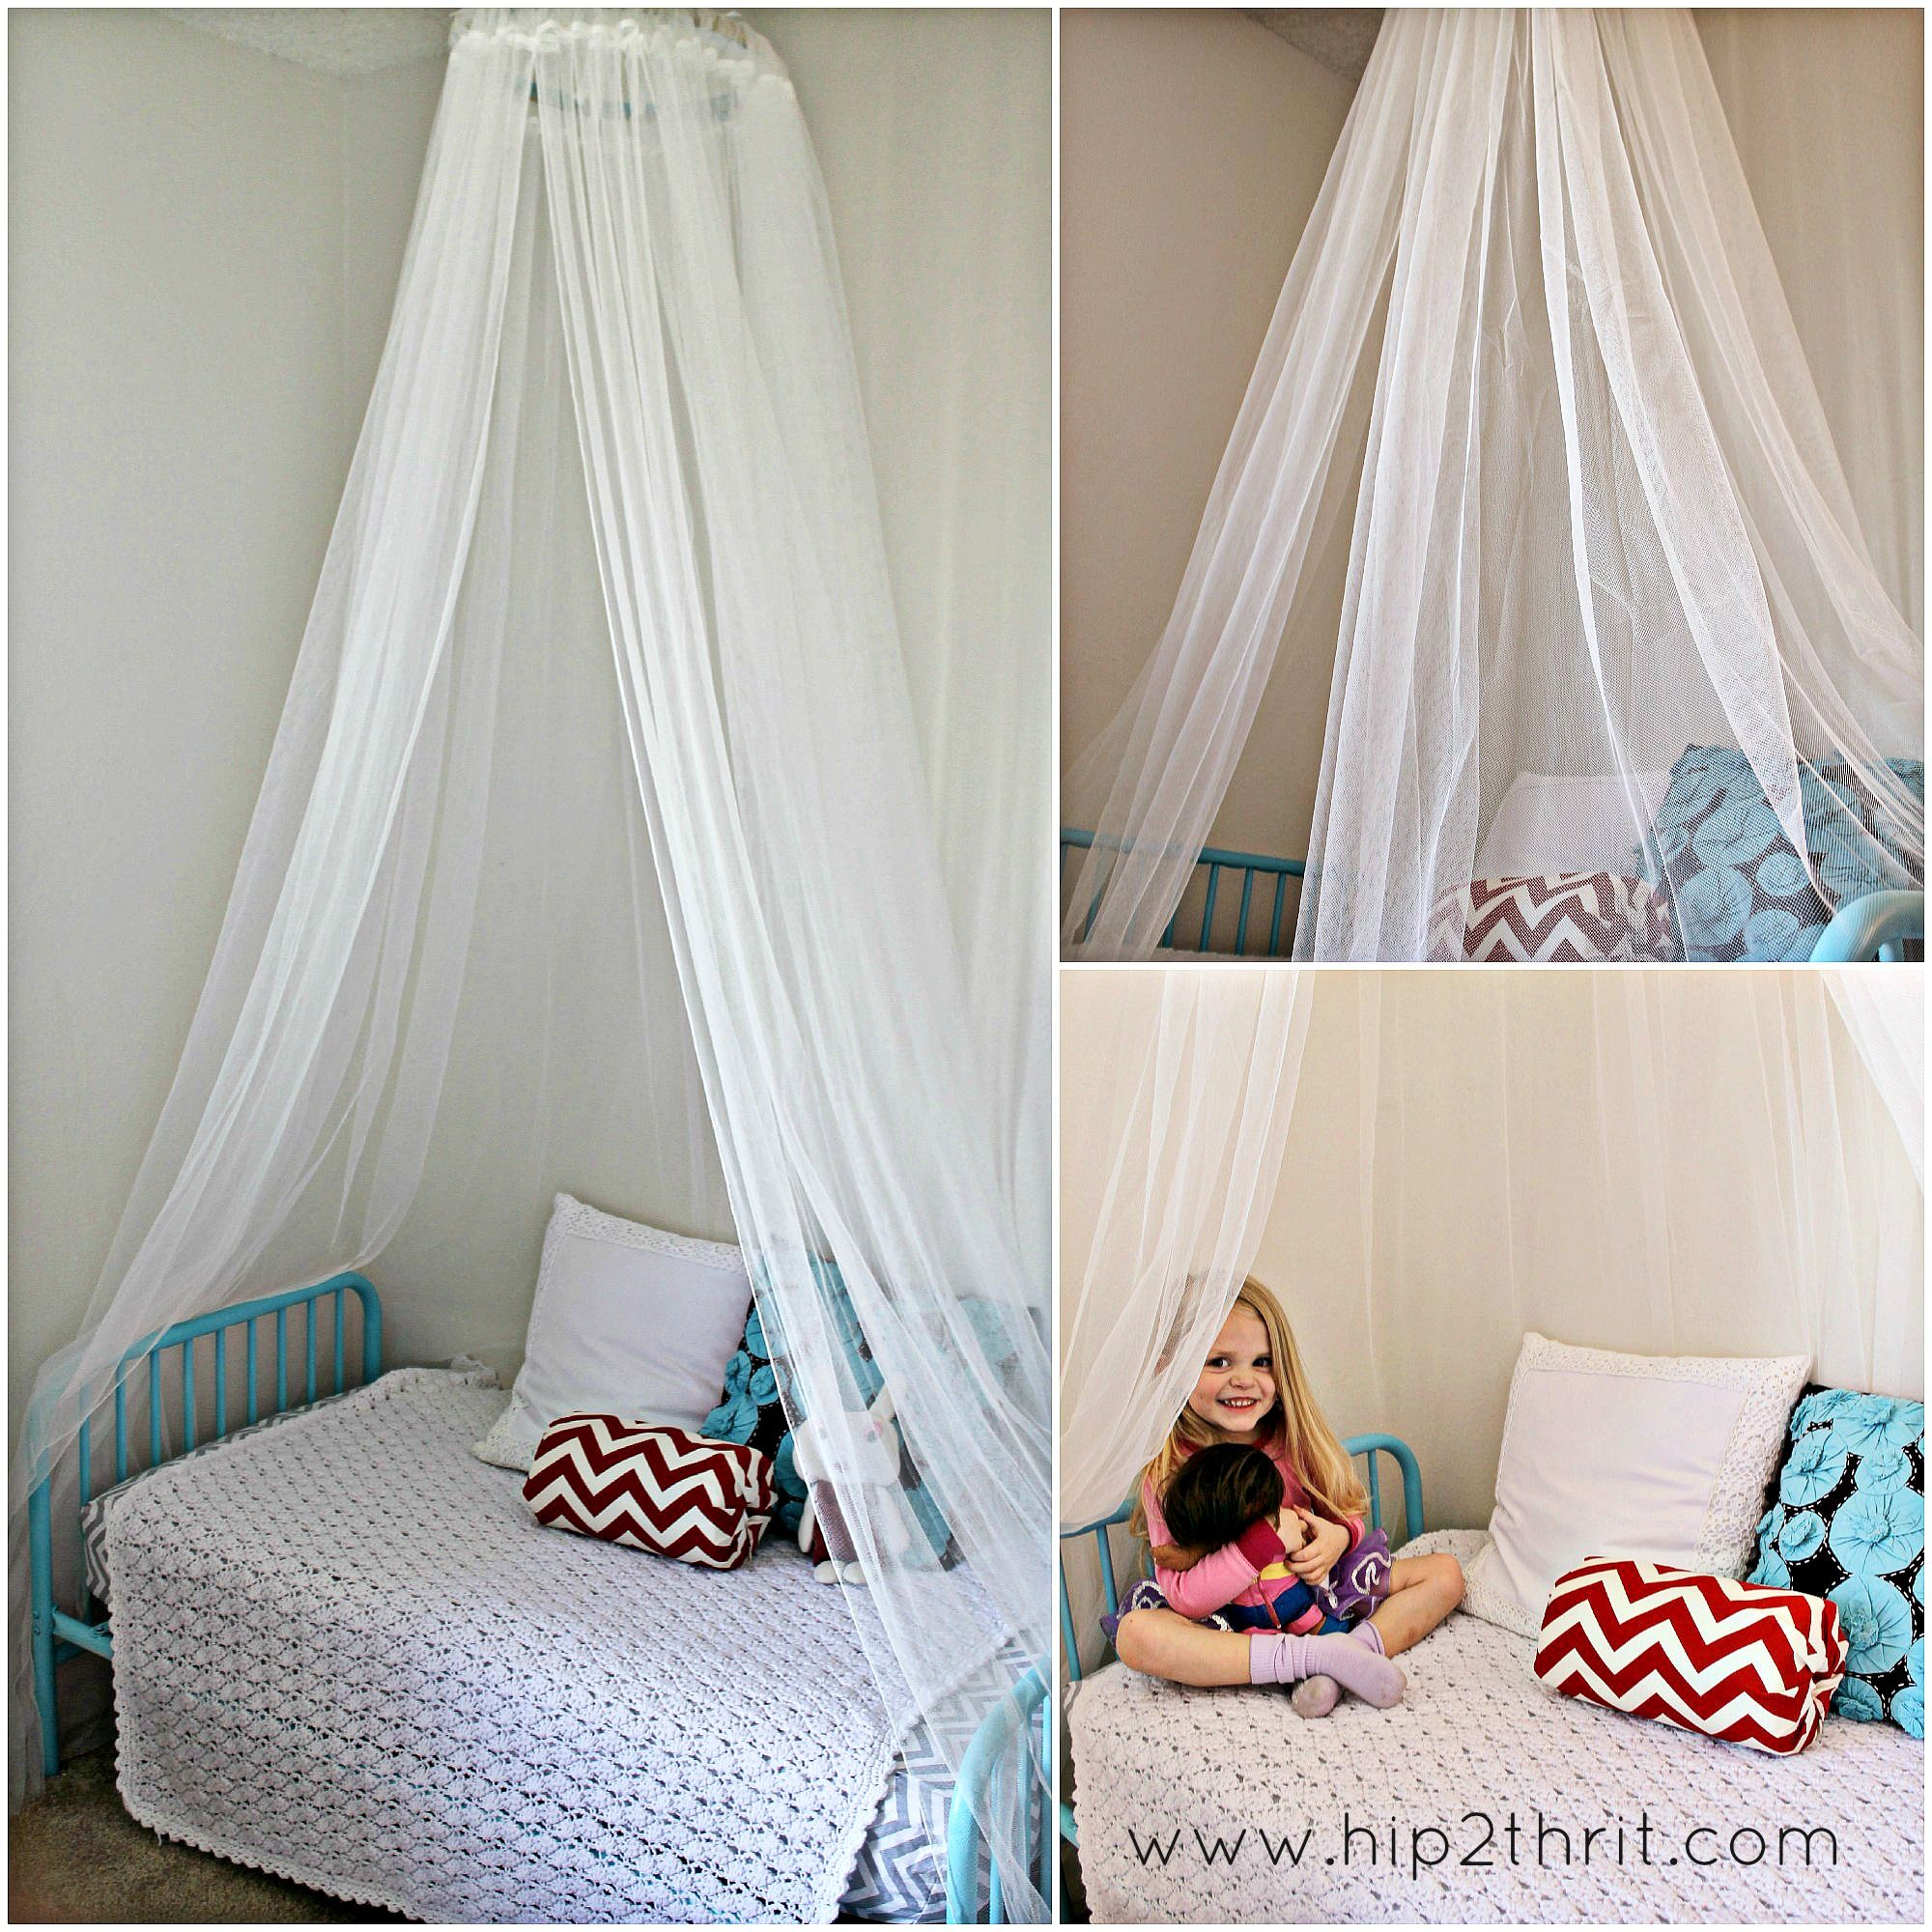 Diy bed canopy dorm - Diy Canopy Bed Using A Embroidery Hoop Perfect To Keep You Safe At Night From